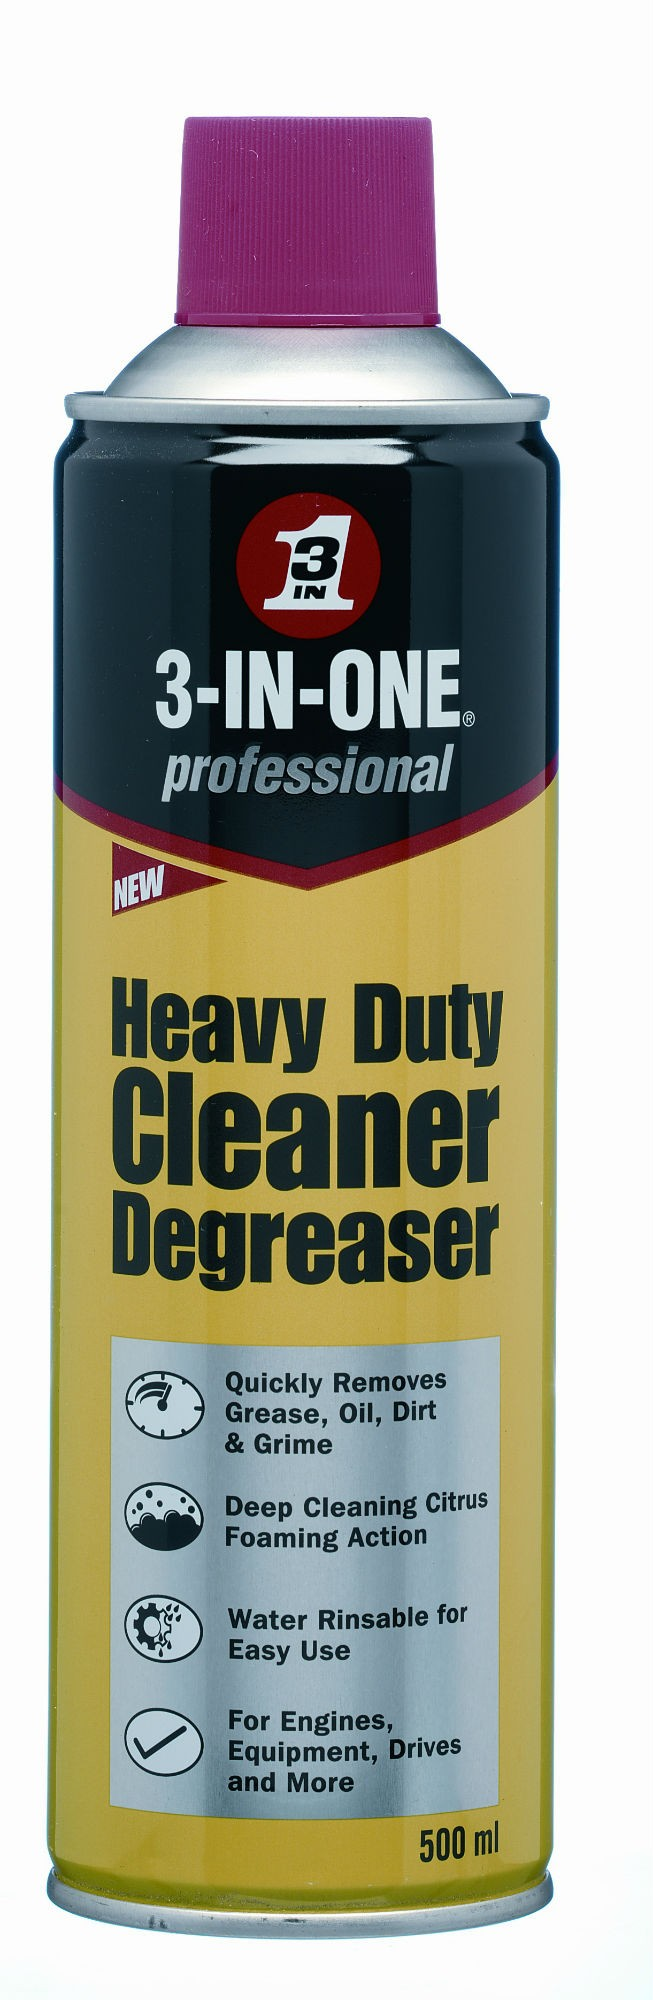 Quickly removes grease, oil, dirt and grime from engines, tools and equipment Works great on lawnmowers, chainsaws, power equipment, automotive and truck engines and parts, as well as gears, chains, pulleys and industrial machinery